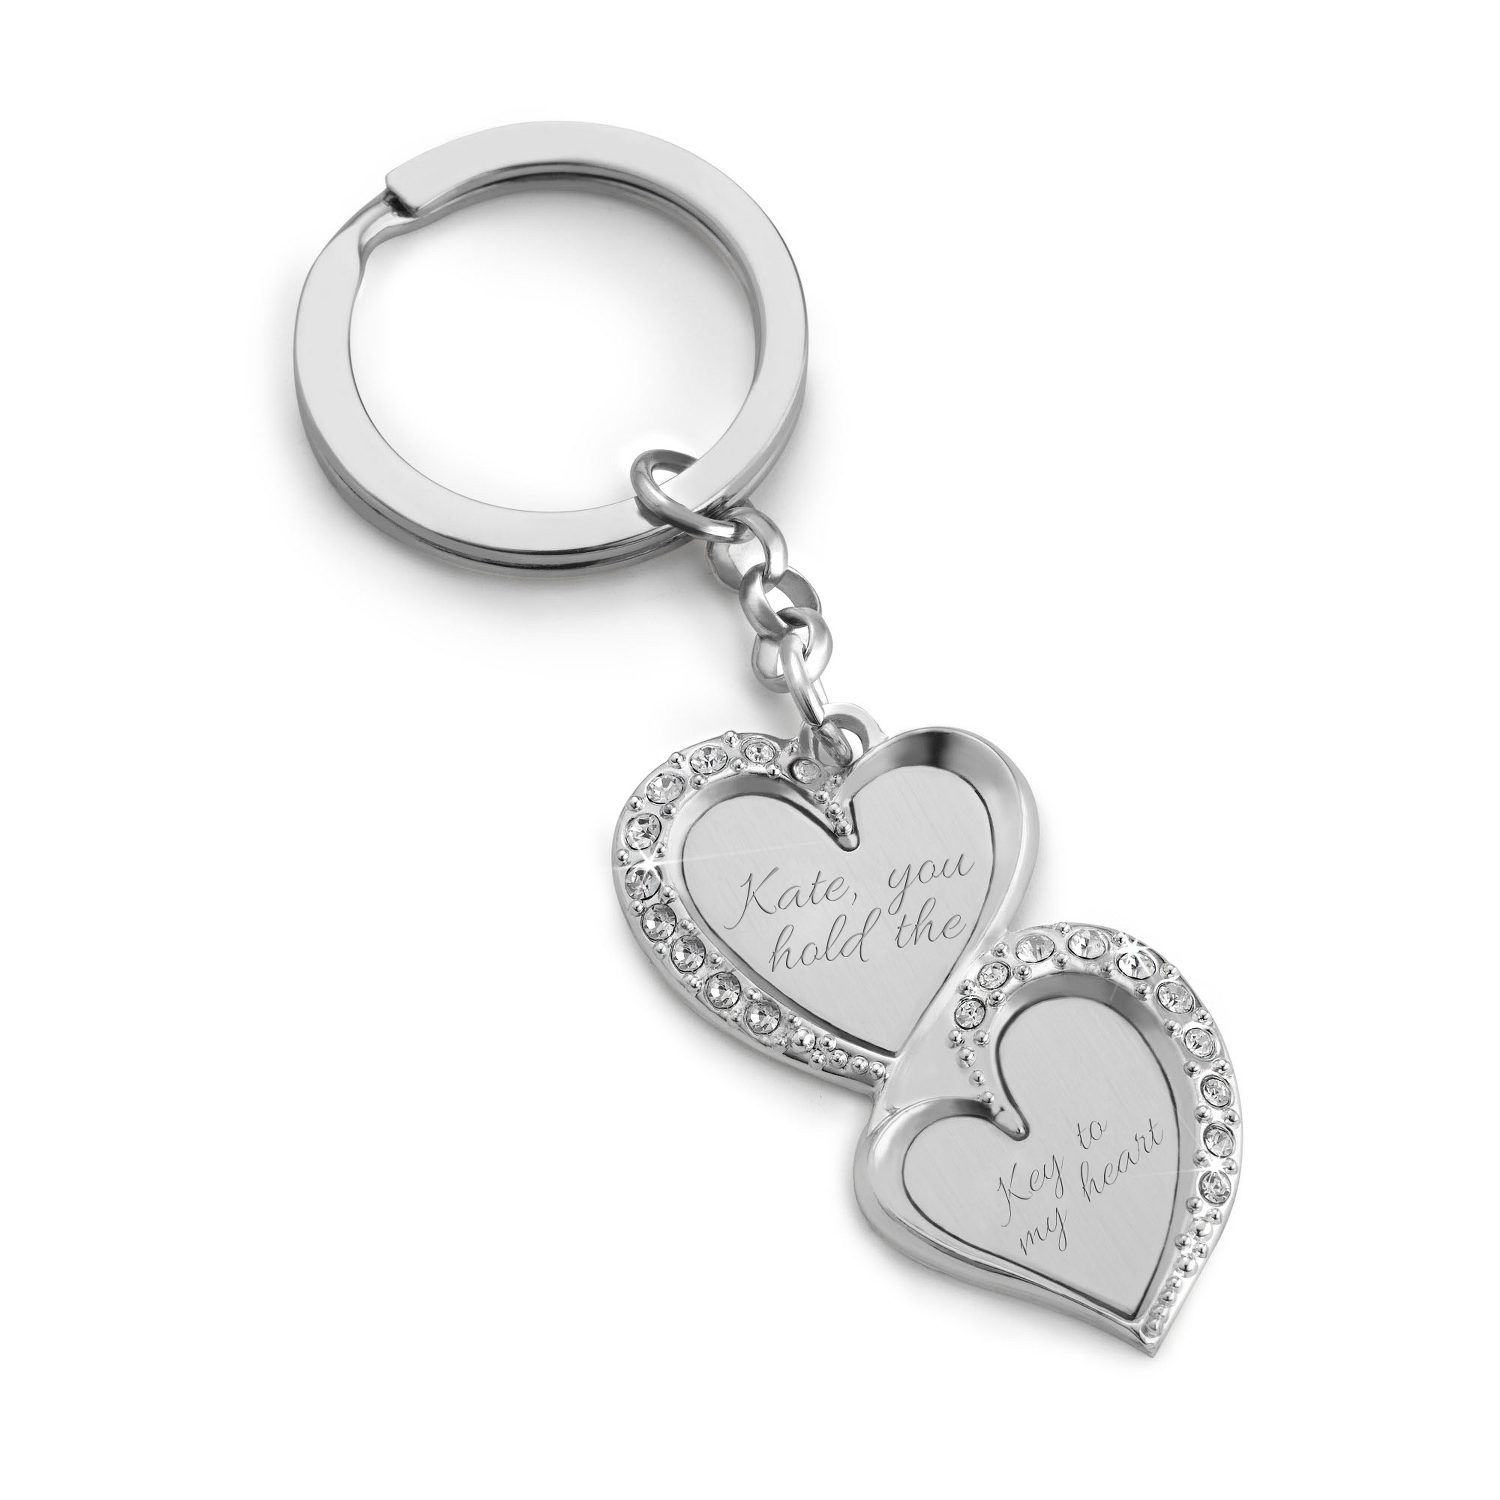 Engraved Double Heart Key Chain. Item No. Here's a gift that will touch her heart and make her smile every time she reaches for her keys. Two playful hearts intertwine in a design featuring two-tone silver and glistening CZ accents. Both hearts are engravable, giving you a great opportunity to say something straight from yours/5(16).